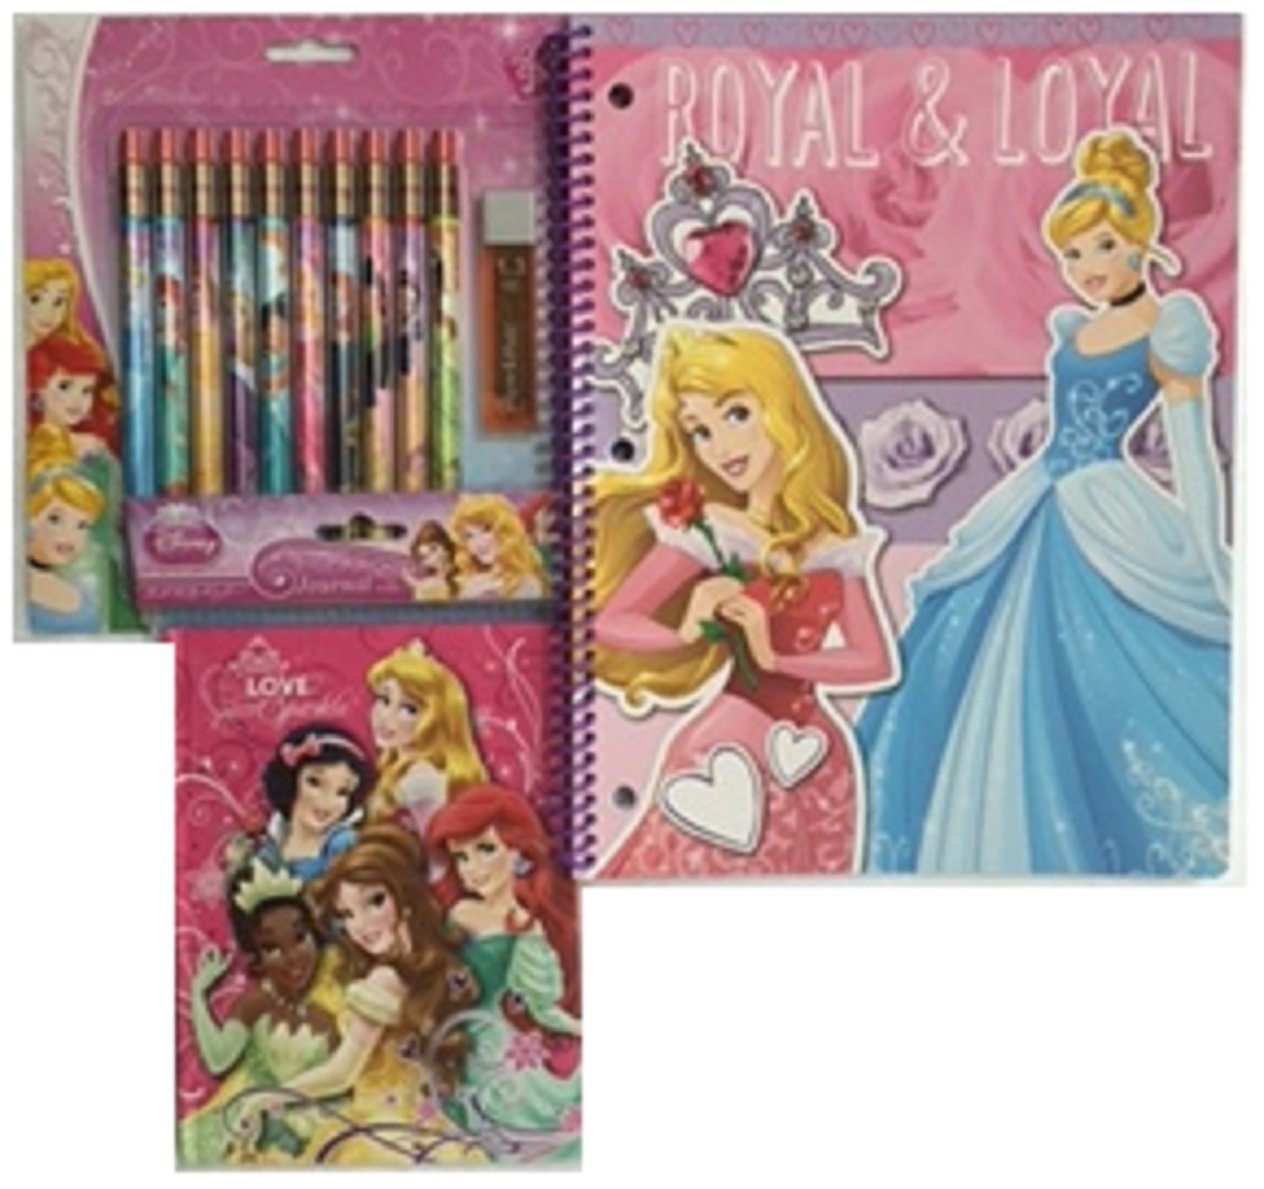 Disney Princess Mechanical Pencils, Royal & Loyal Notebook, Journal-Bundle 3 Items